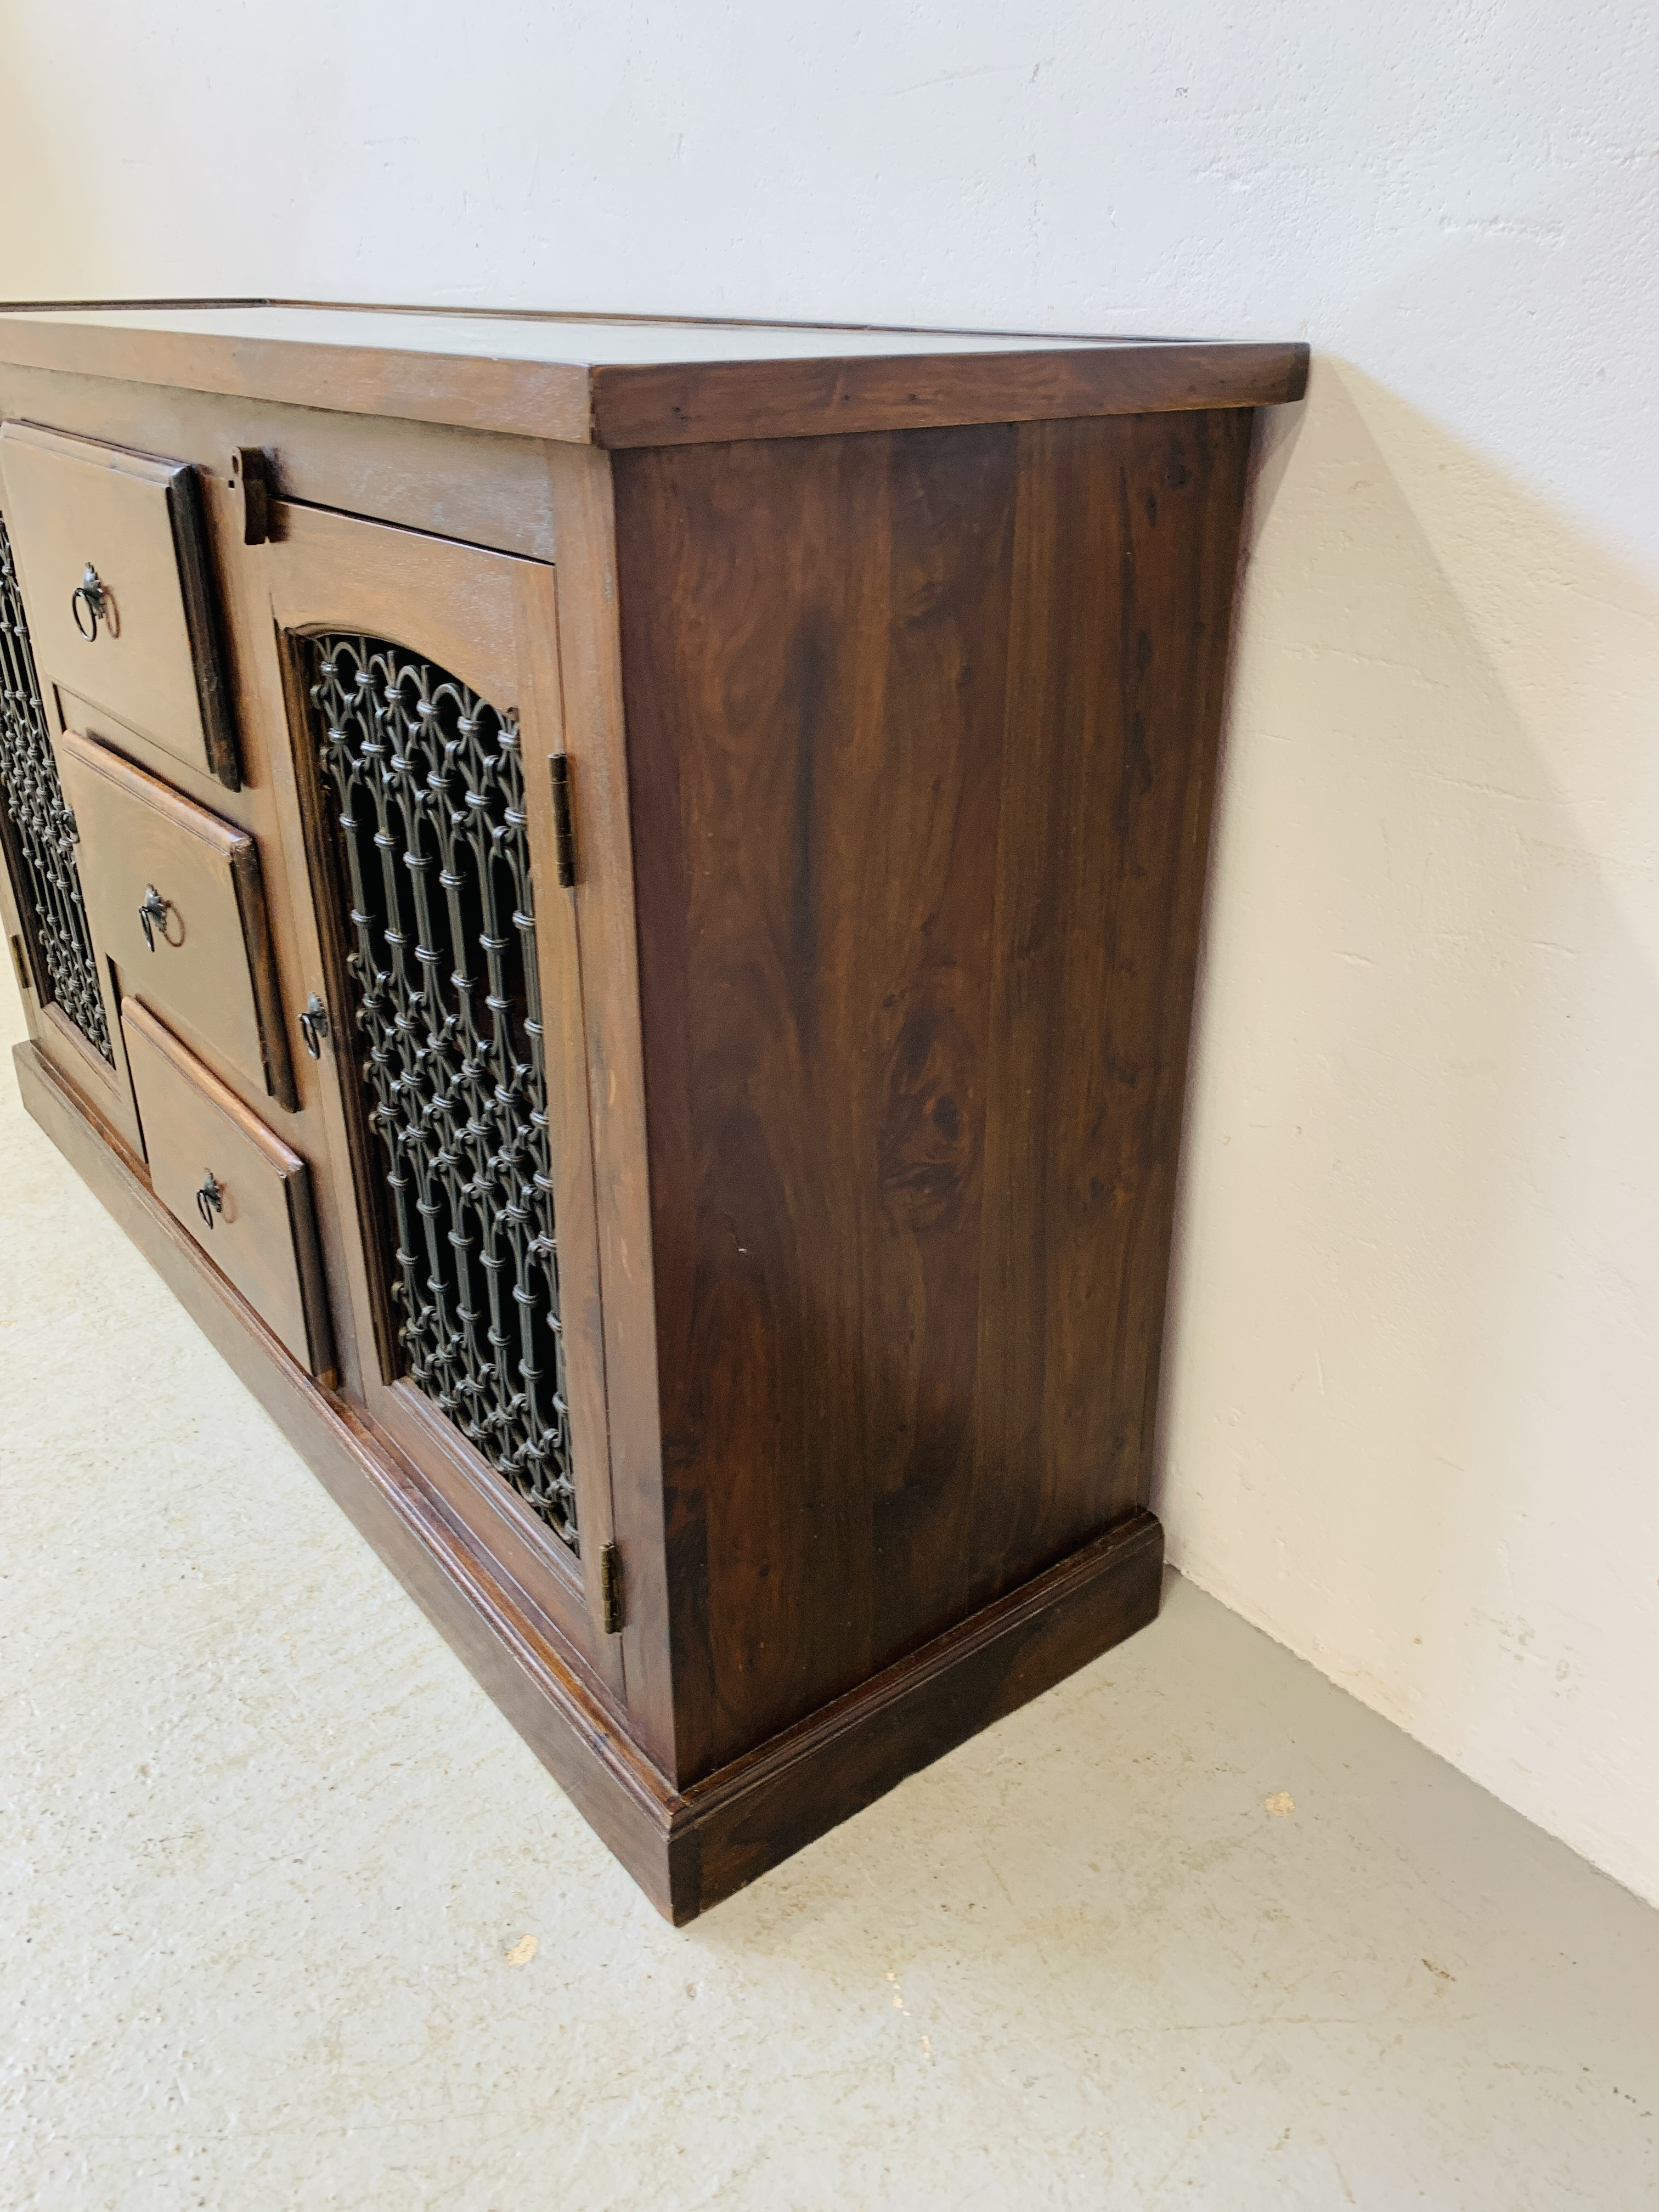 A RUSTIC HARDWOOD COUNTRY & EASTERN STYLE DRESSER BASE, - Image 4 of 9